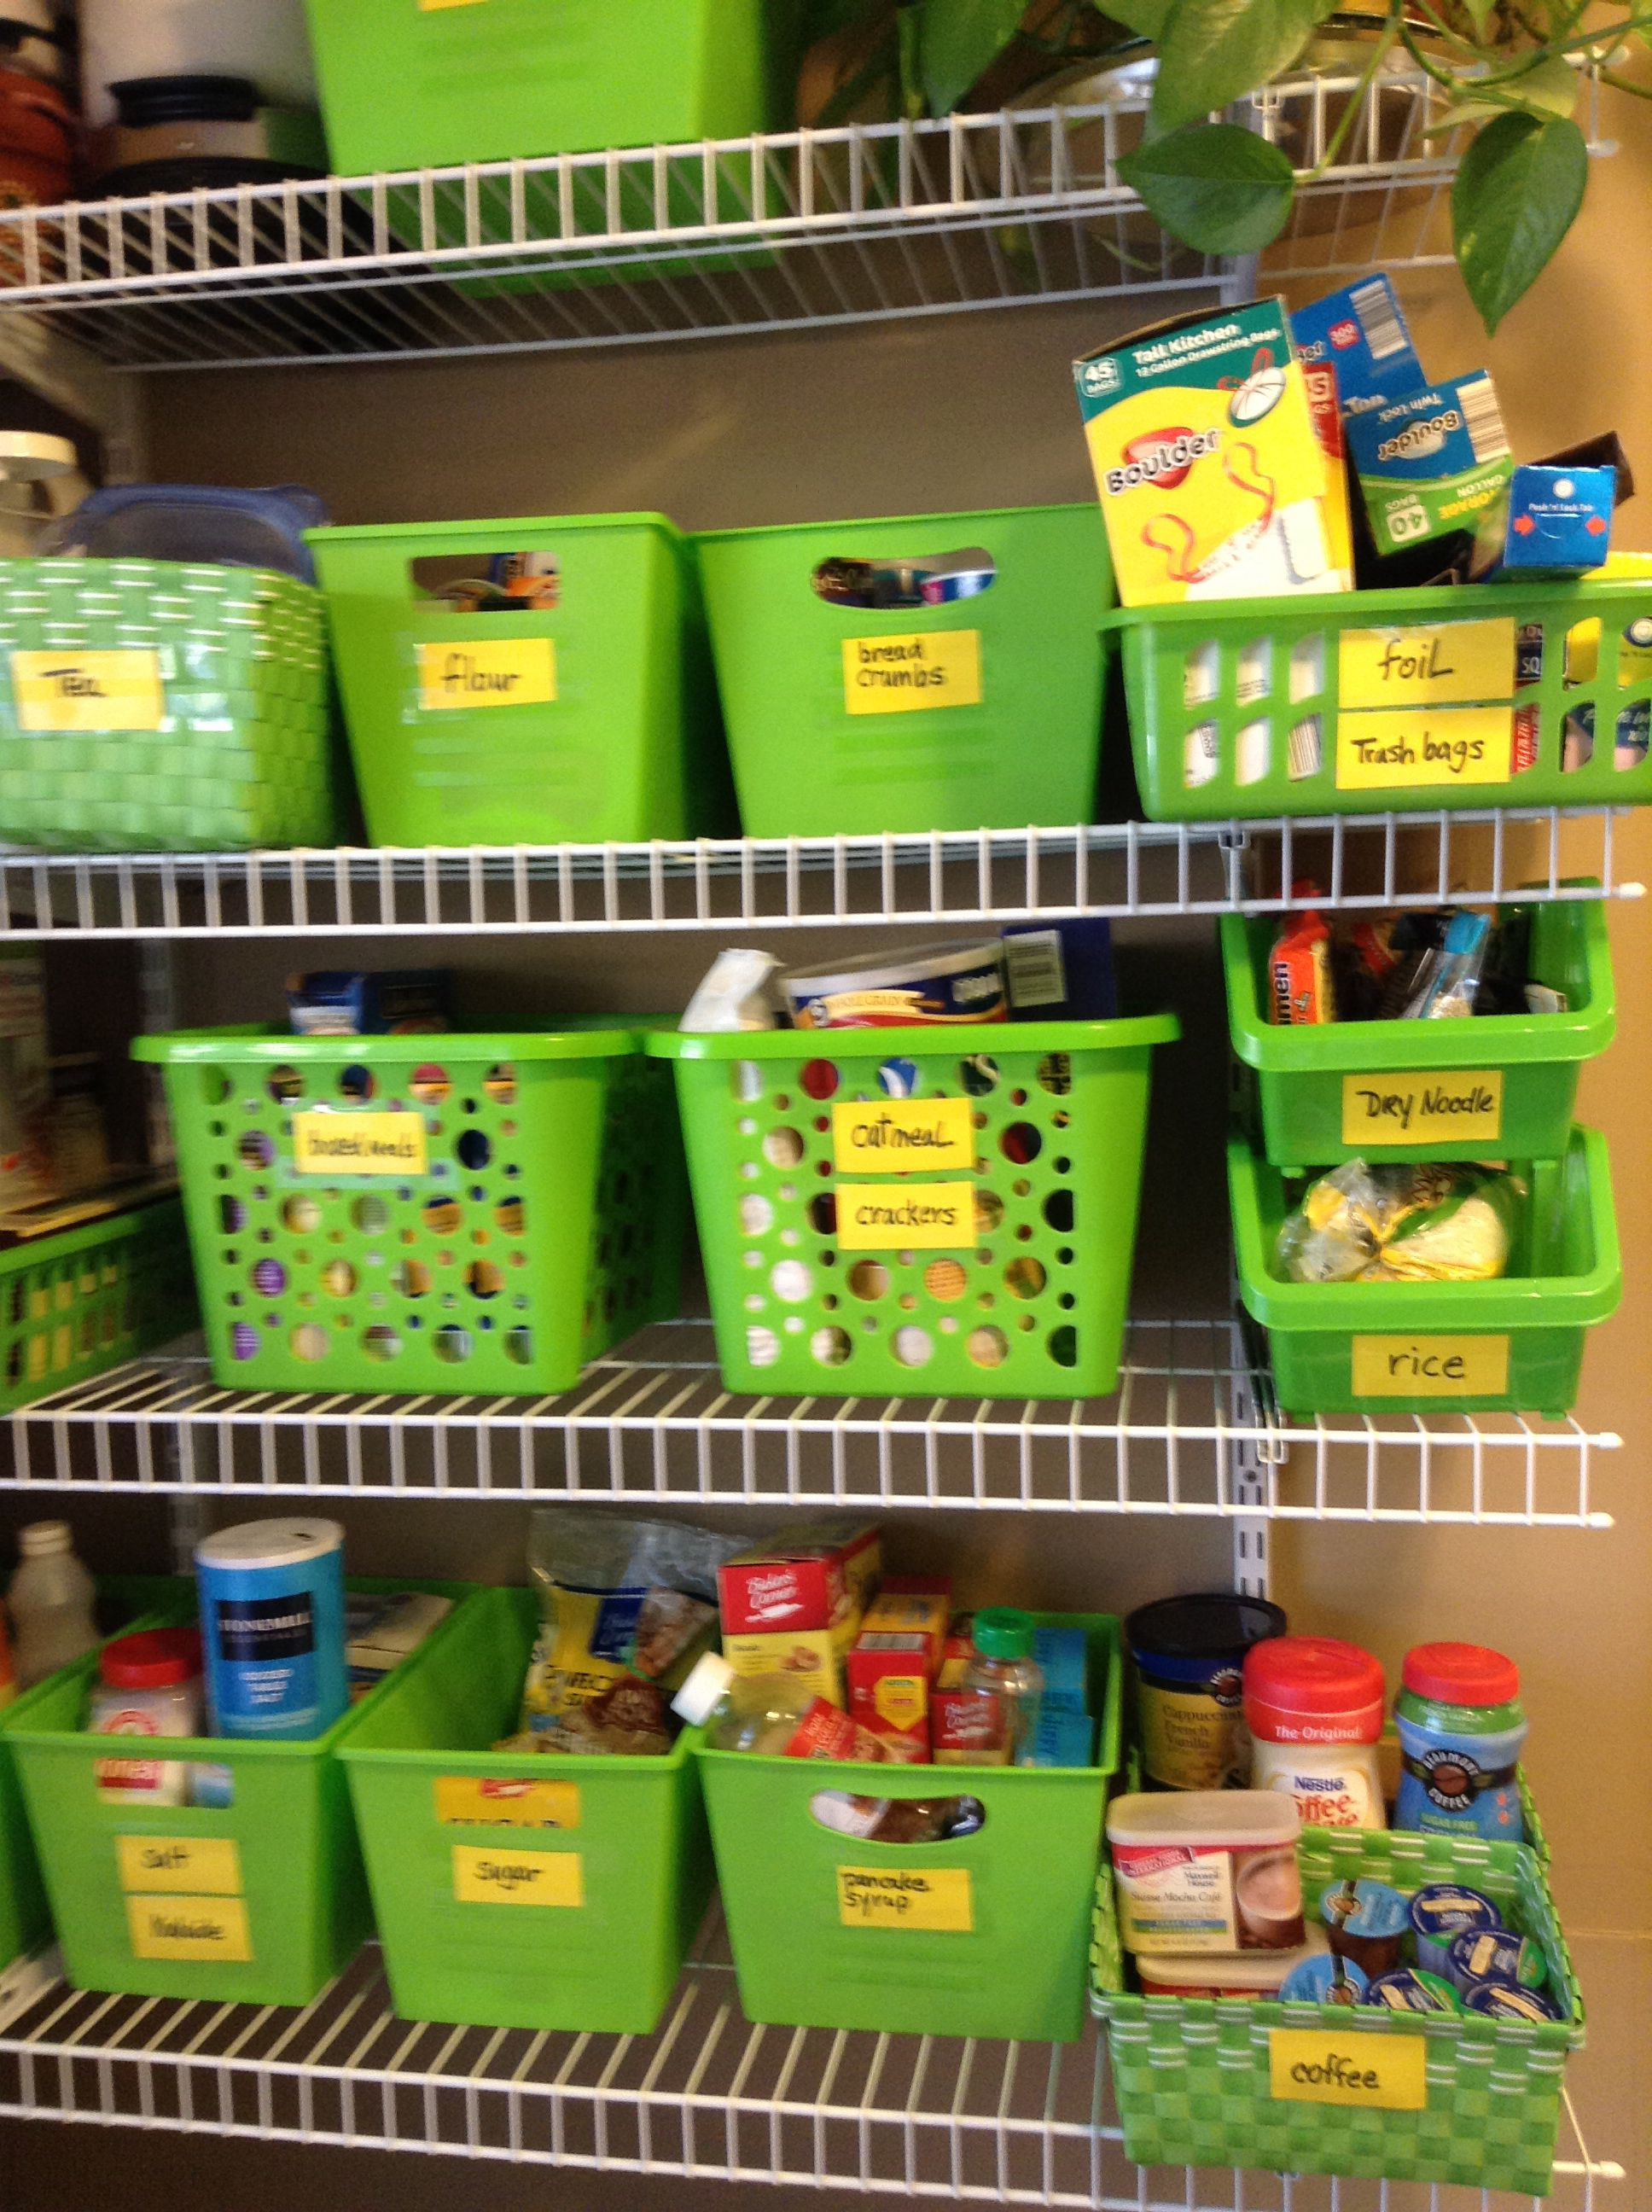 Green apple storage bins with yellow post it notes for Plastic fish bowls dollar tree